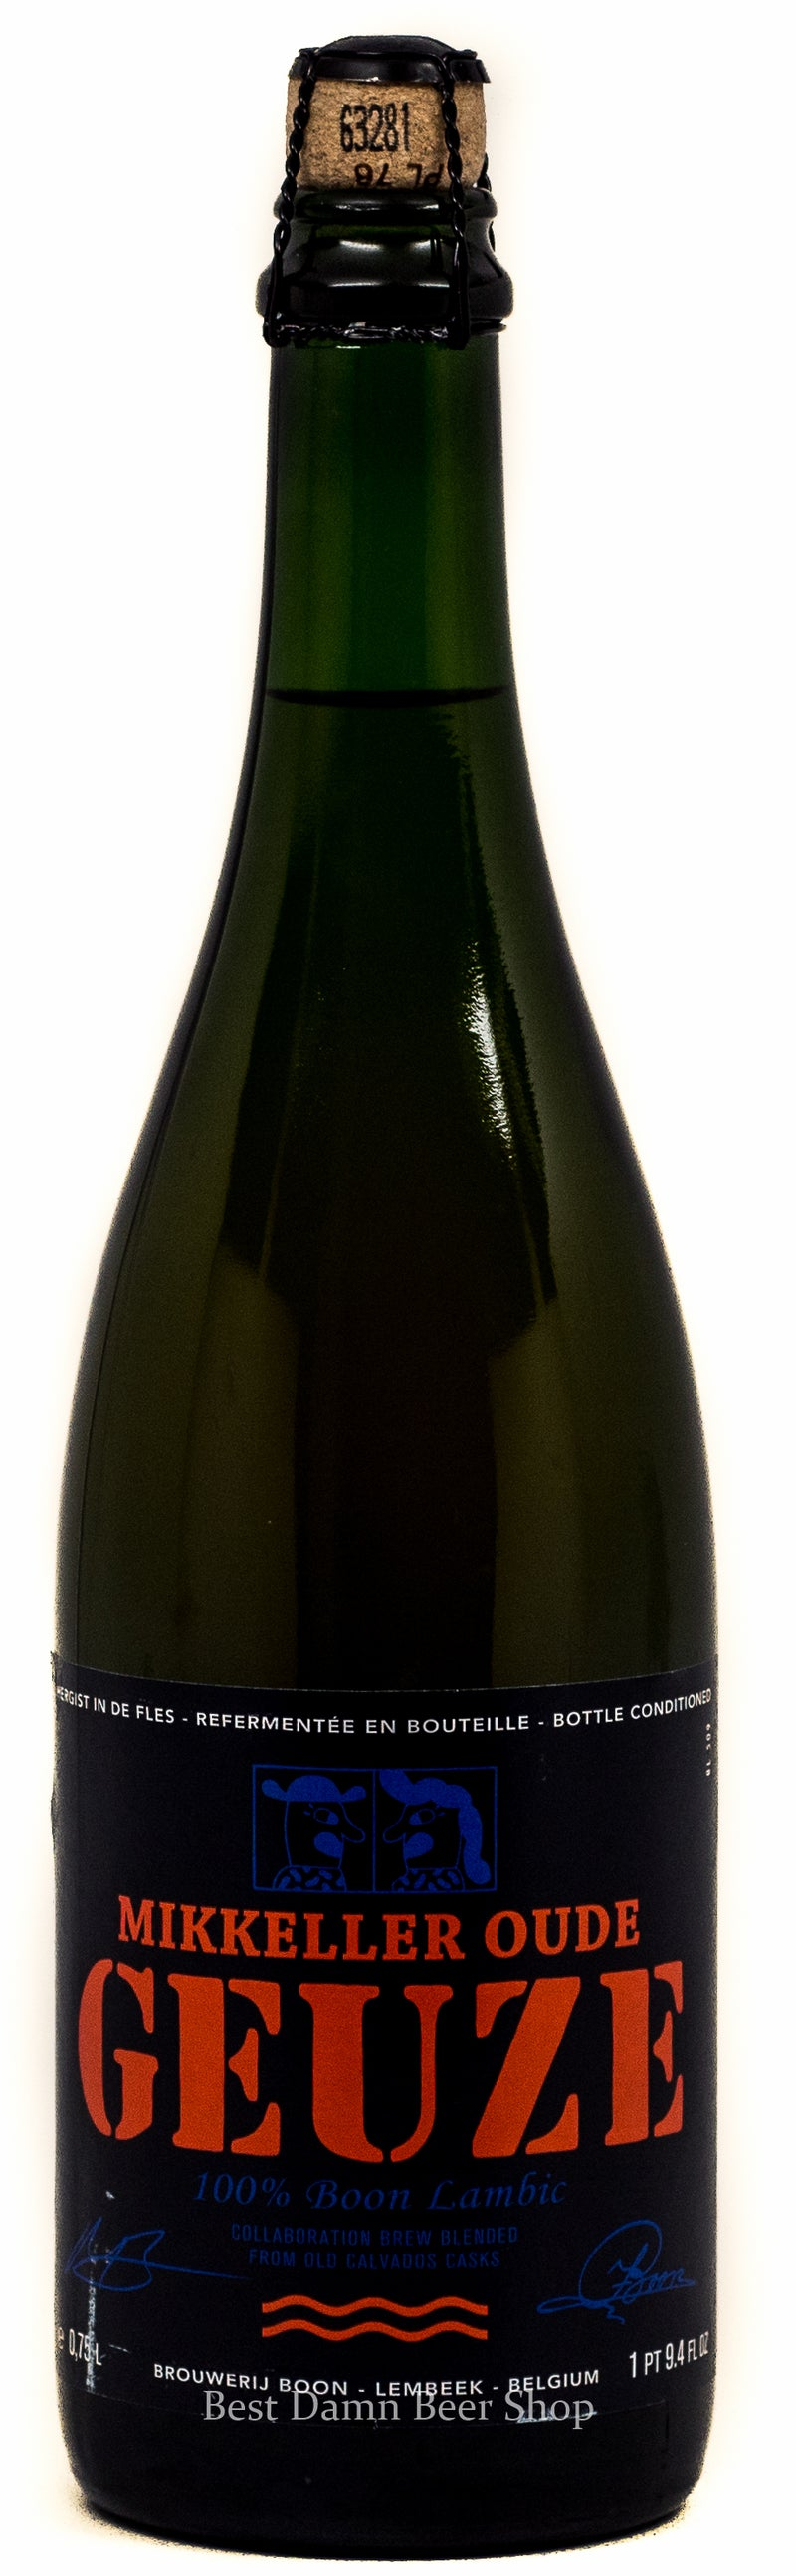 Mikkeller Oude Geuze 750ML LIMIT 2 Collab with Boon